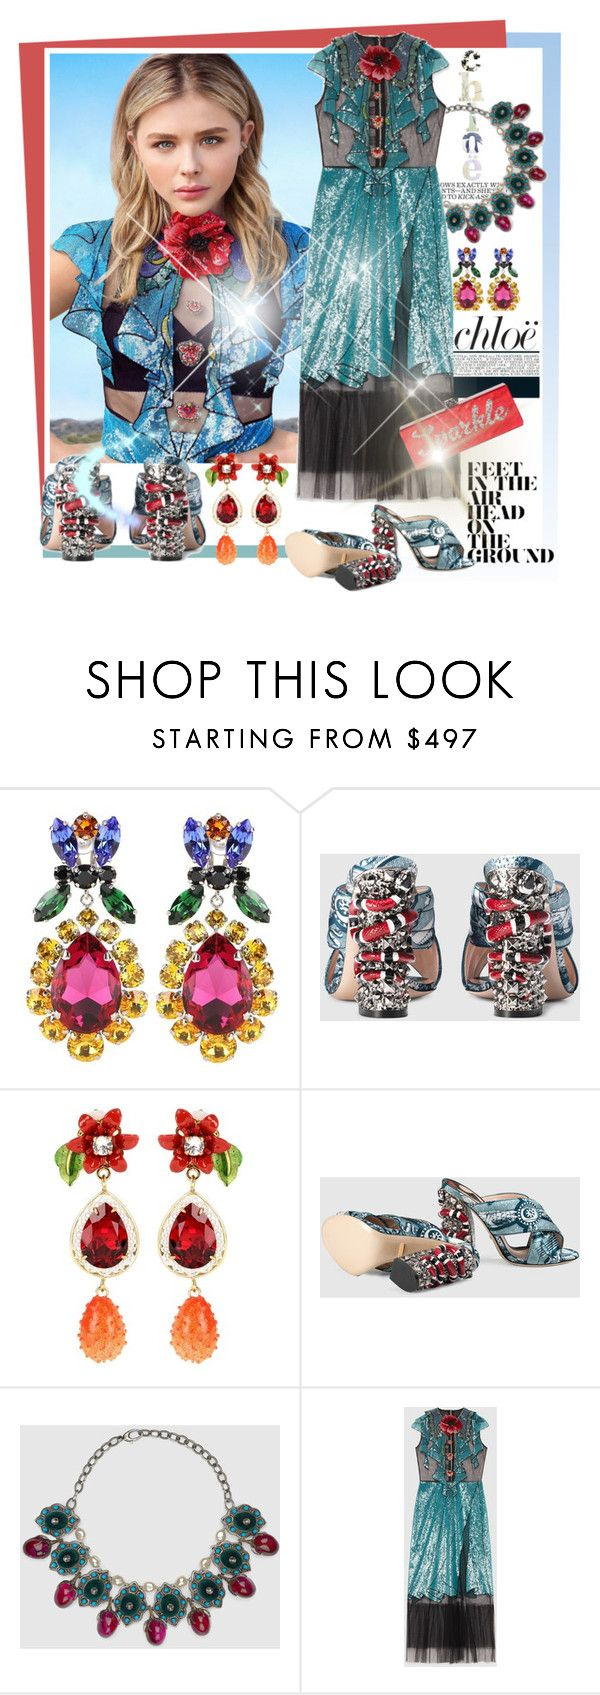 """""""Shine & Sparkle"""" by sylandrya ❤ liked on Polyvore featuring Miu Miu, Chloé, Dolce&Gabbana and Edie Parker"""